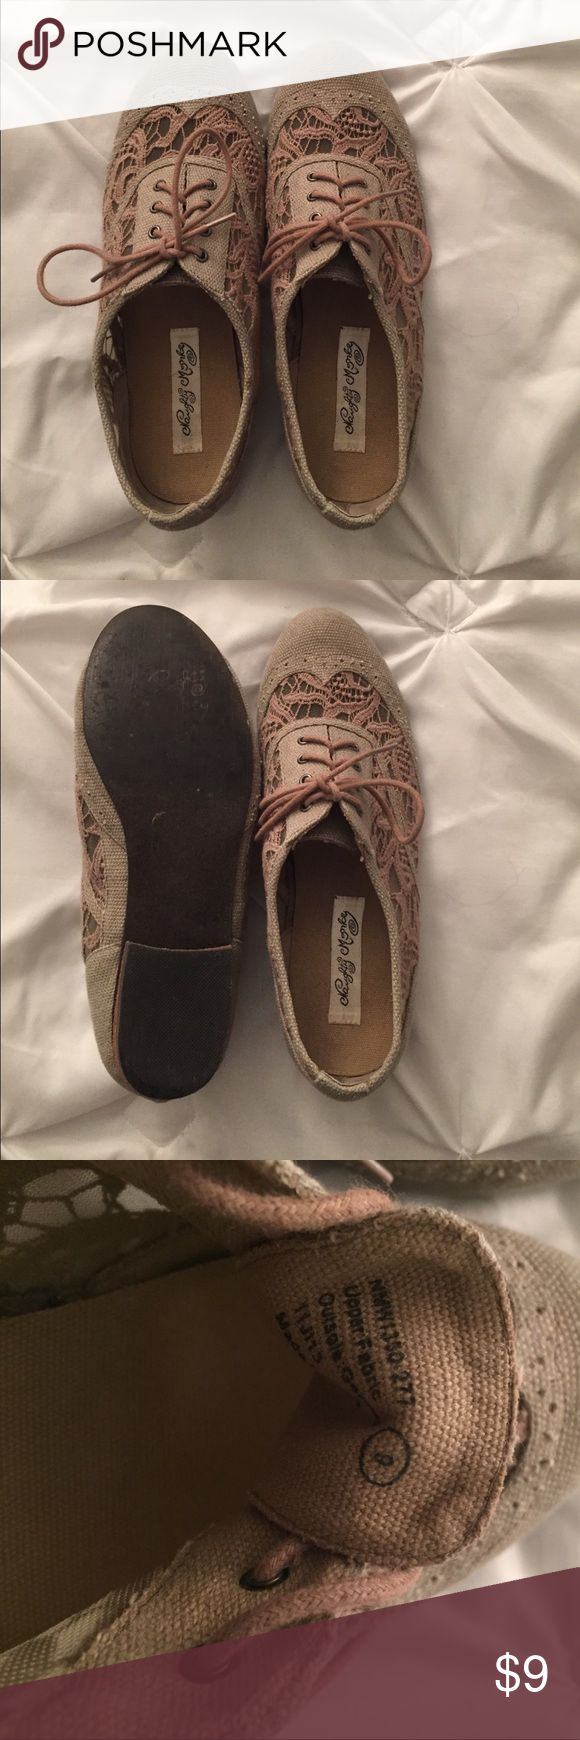 Adorable tan/cream colored size 9 lace oxfords! These adorable size 9 oxfords have lace on the toe and on the sides. They are from Naughty Monkey. I am reposhing because they fit too big on me. Come from a smoke and pet free home! Shoes